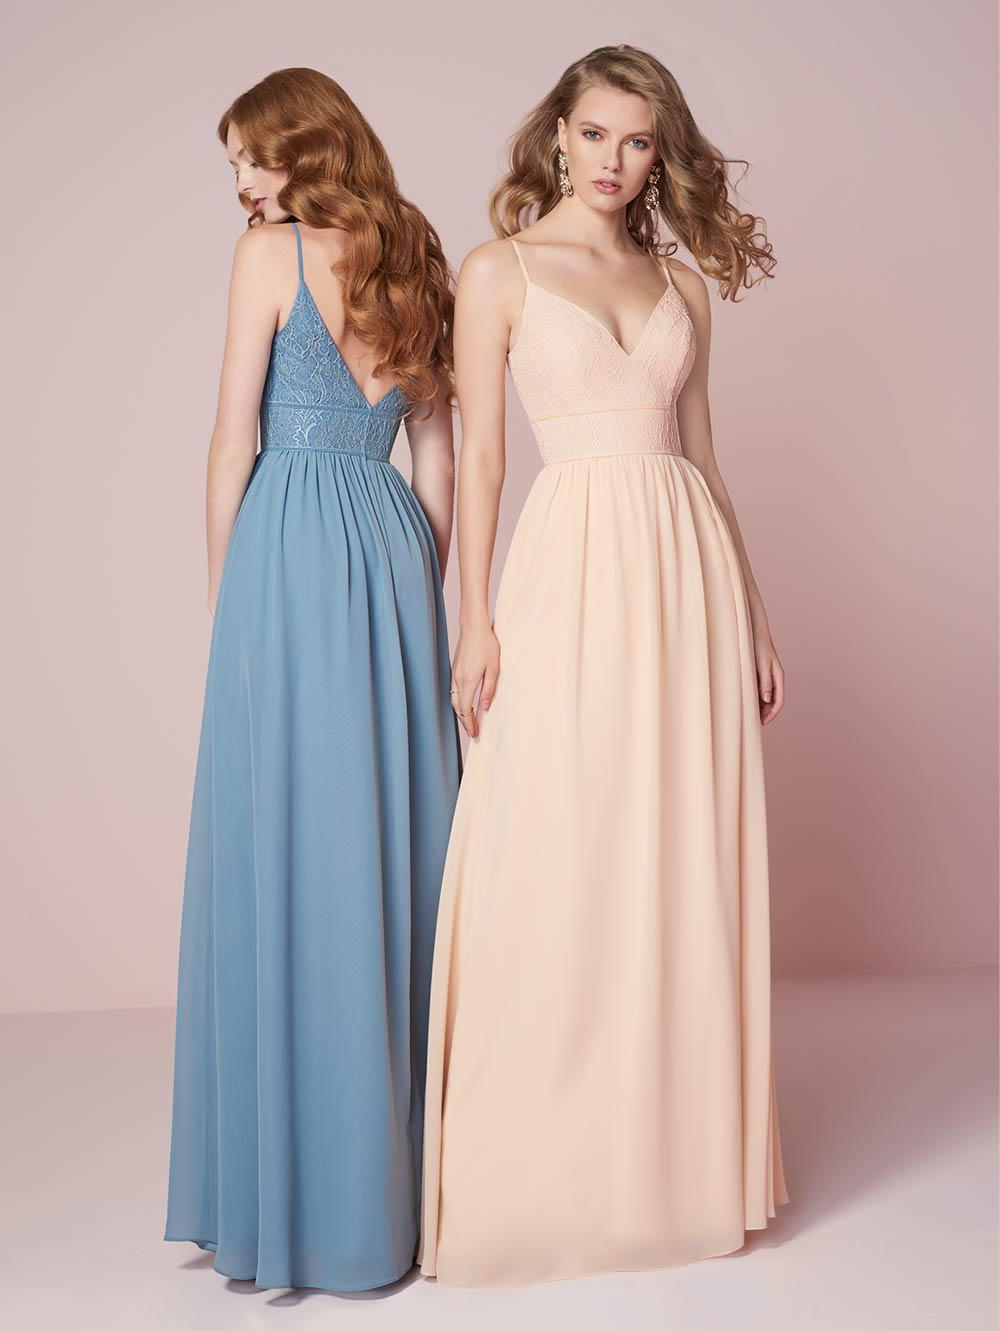 bridesmaid-dresses-jacquelin-bridals-canada-27761